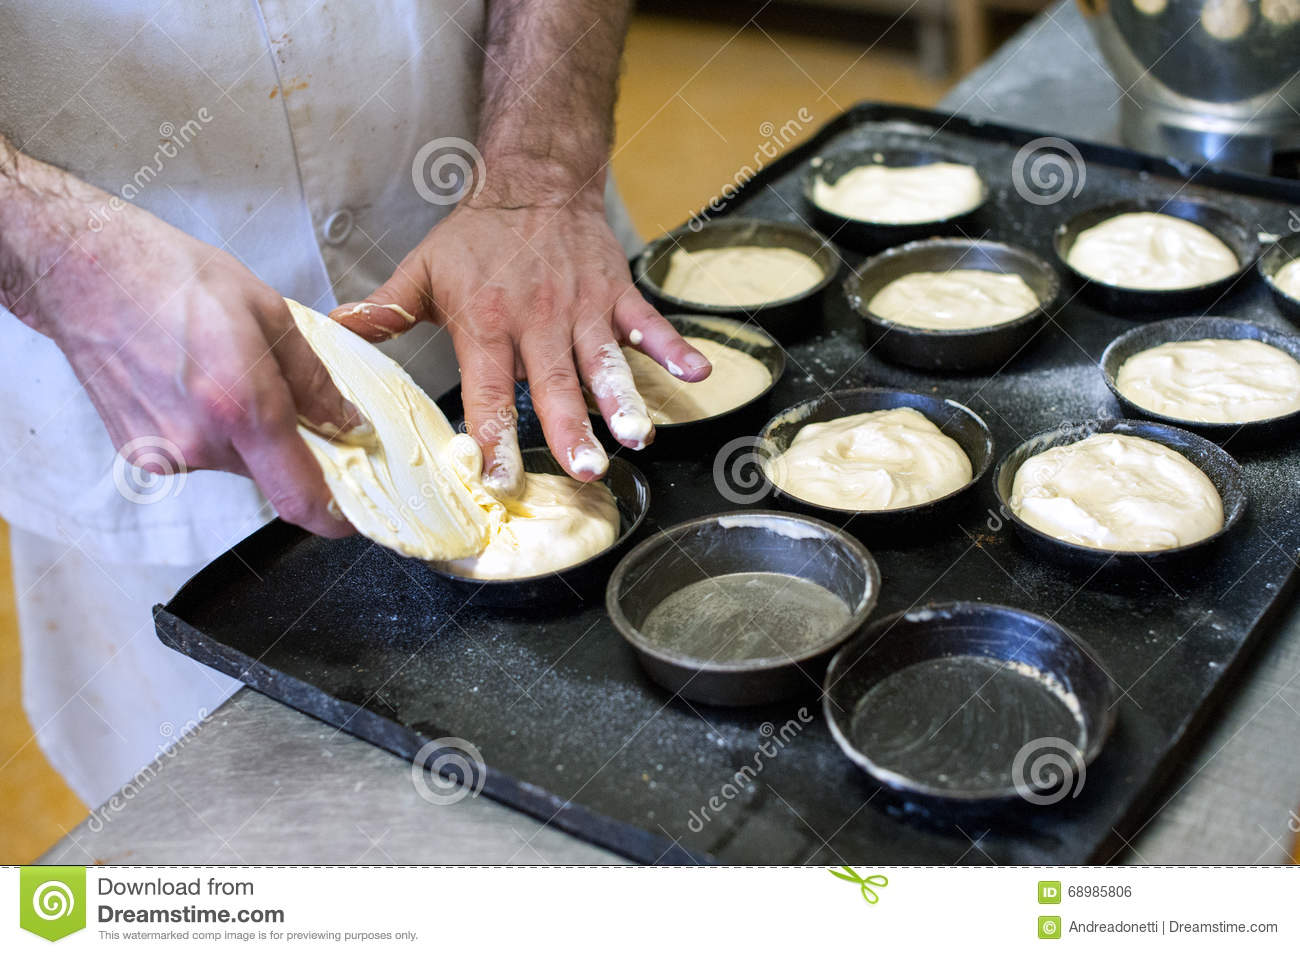 Baker making pastries in a bakery